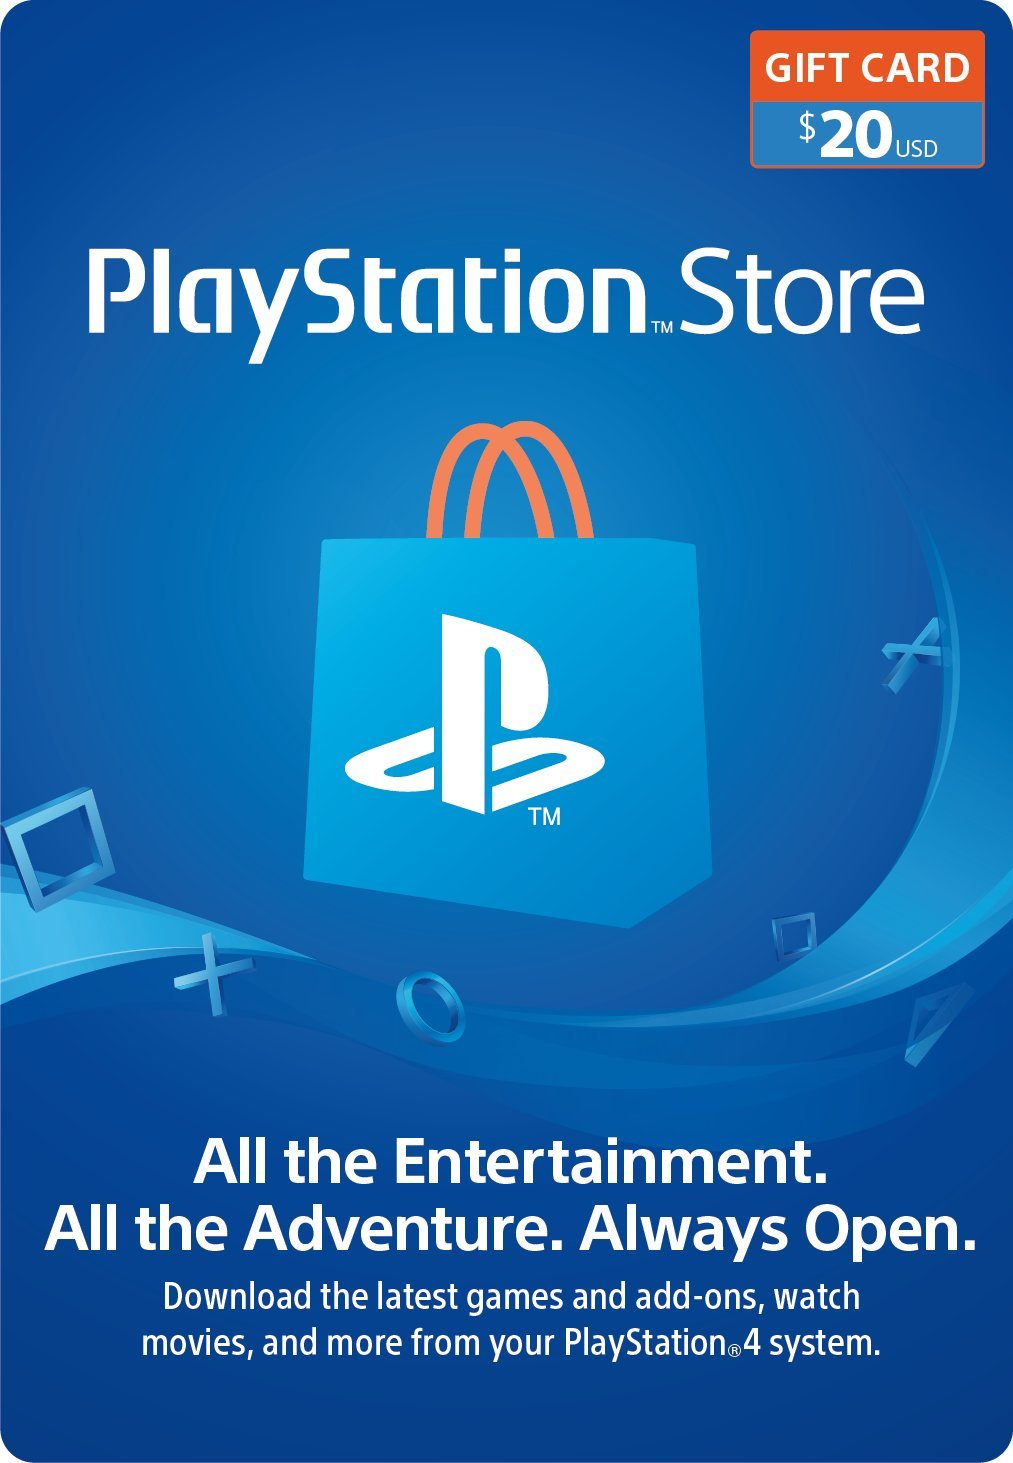 Amazon.com: $20 PlayStation Store Gift Card [Digital Code]: Video Games